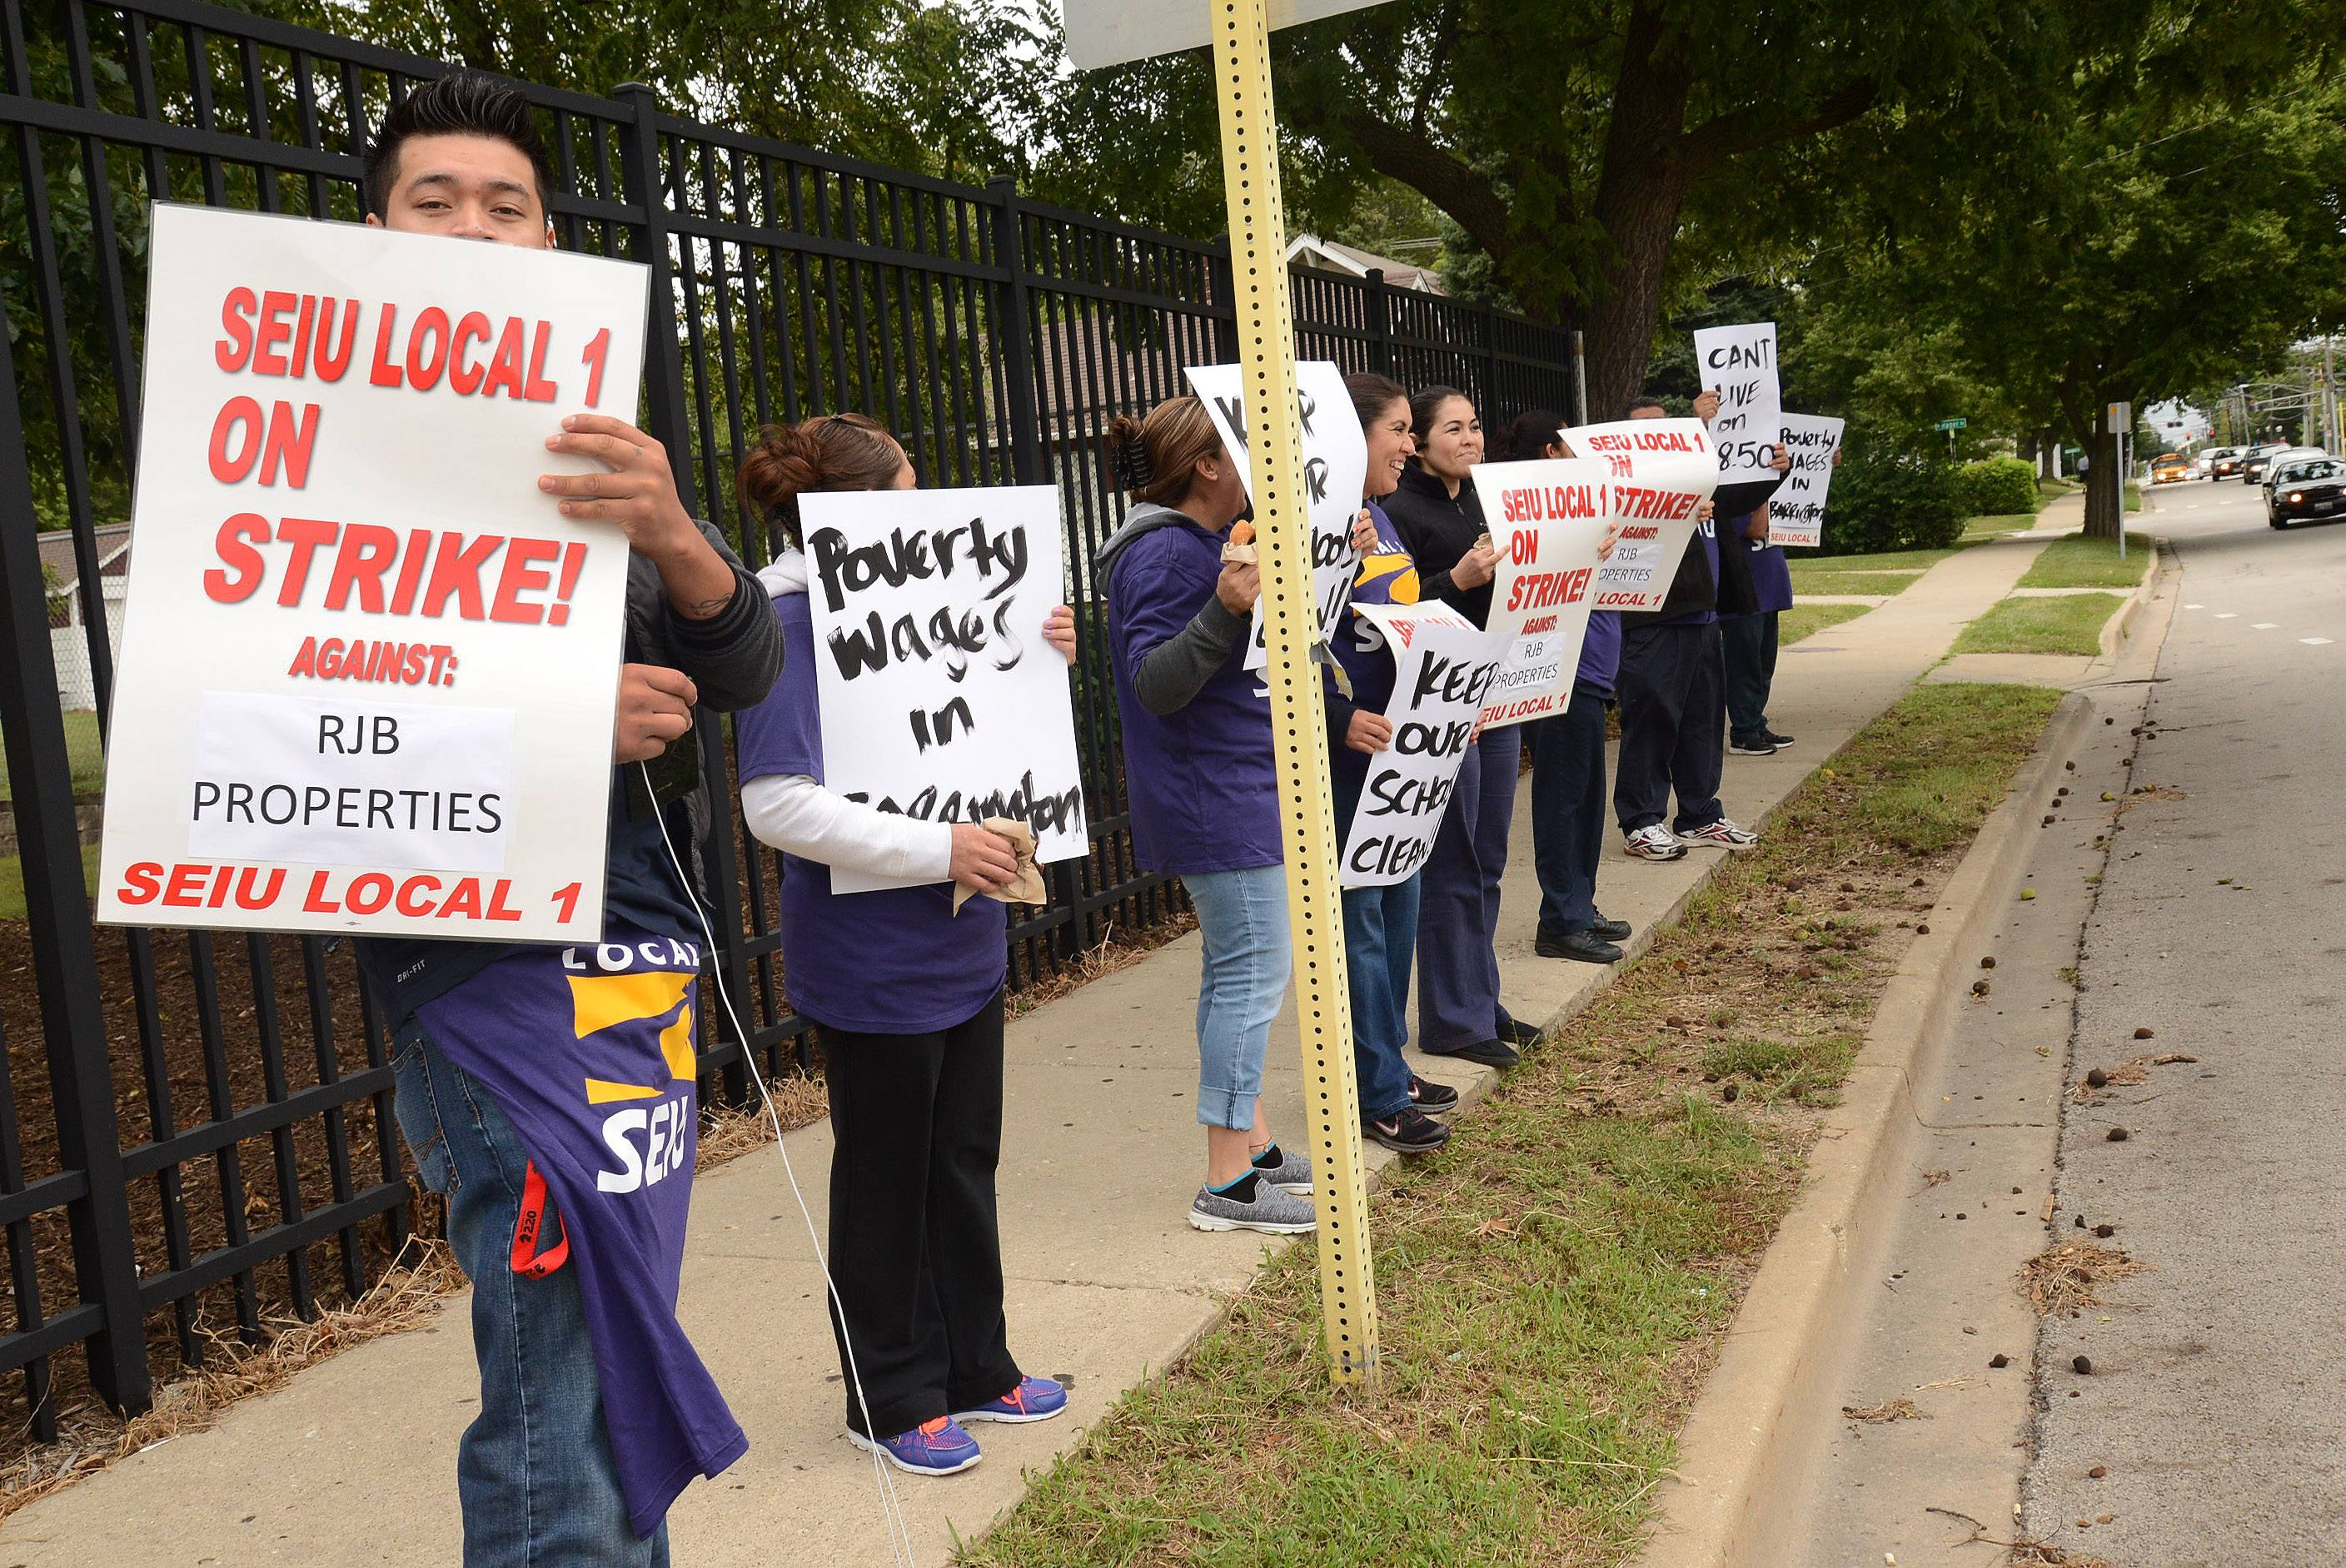 A custodian strike at Barrington High School is over, after the janitors' employer promised to up their pay from $8.50 to $9.50 an hour. The custodians will return to work Tuesday.